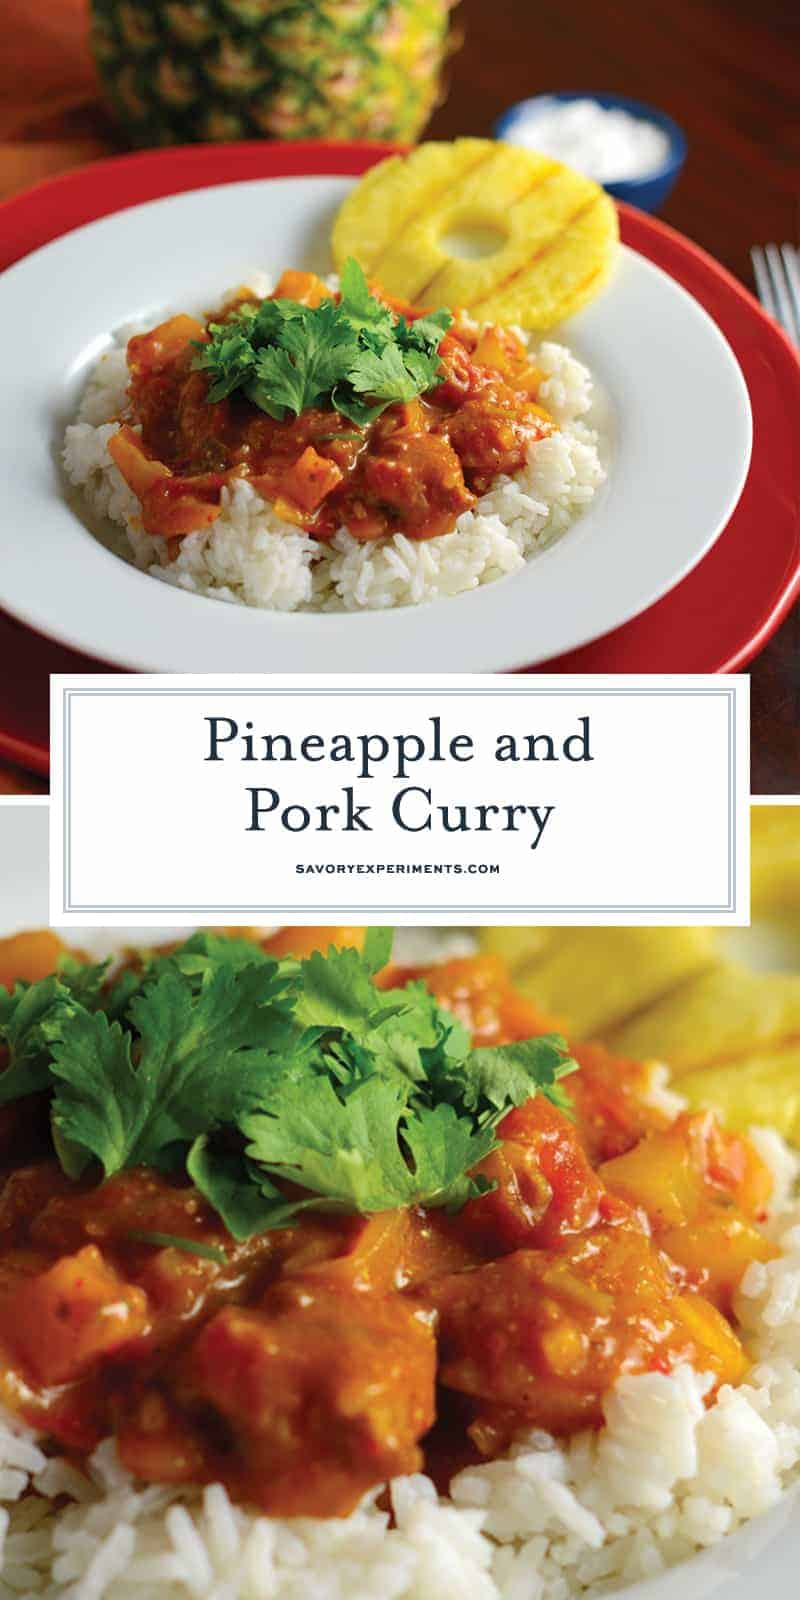 Pineapple and Pork Curry is a homemade curry recipe using fresh herbs and spices, tender pork, sweet pineapple tomatoes and citrus for an amazing curry from scratch that everyone will love.#homemadecurry #curryfromscratch #porkcurry www.savoryexperiments.com